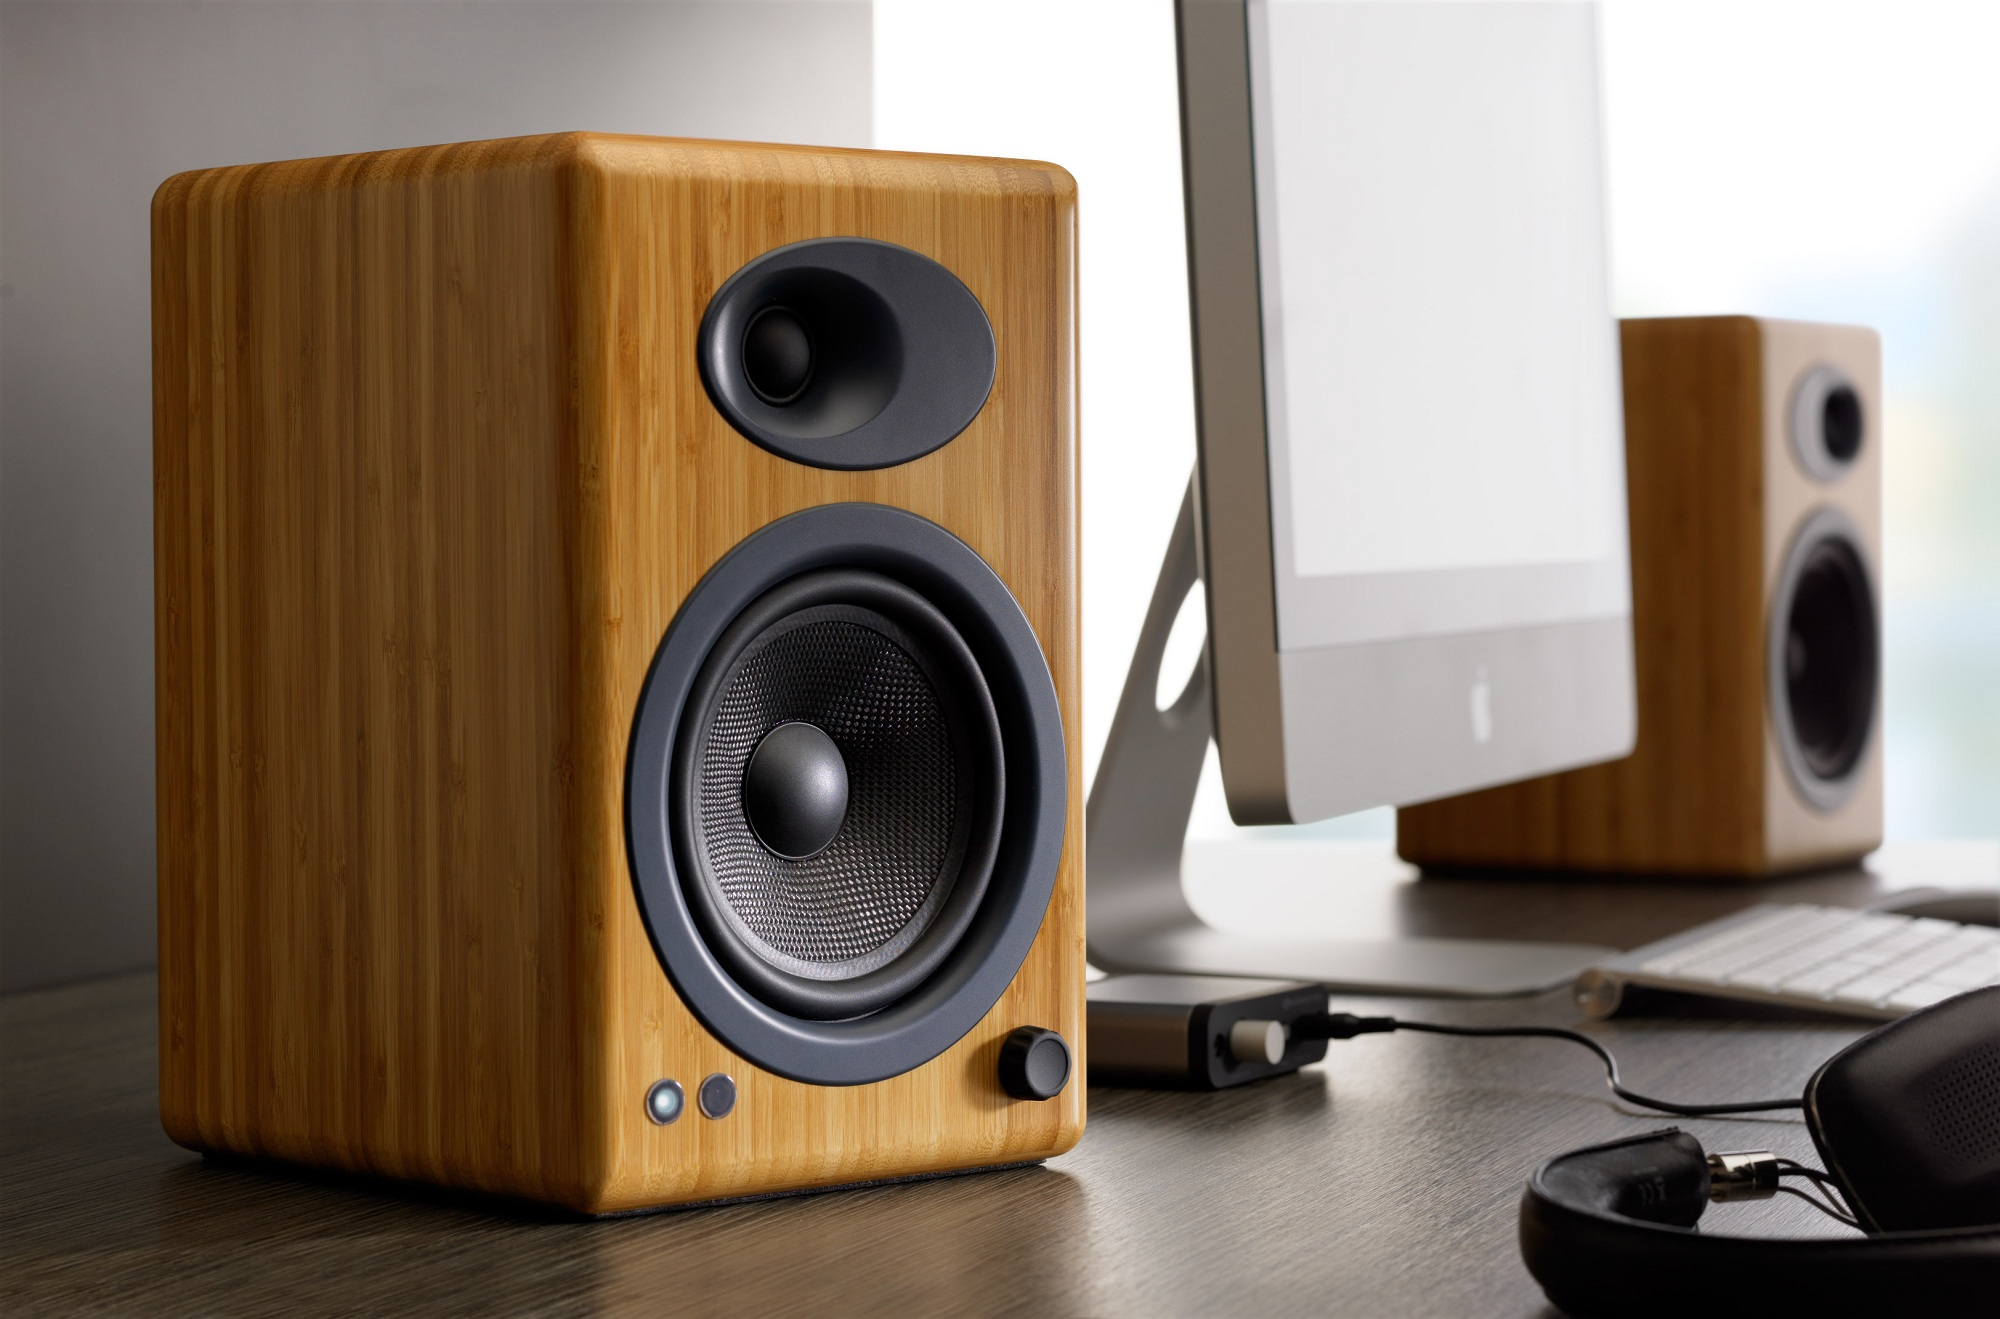 Loa Audioengine 5+ (Bamboo)